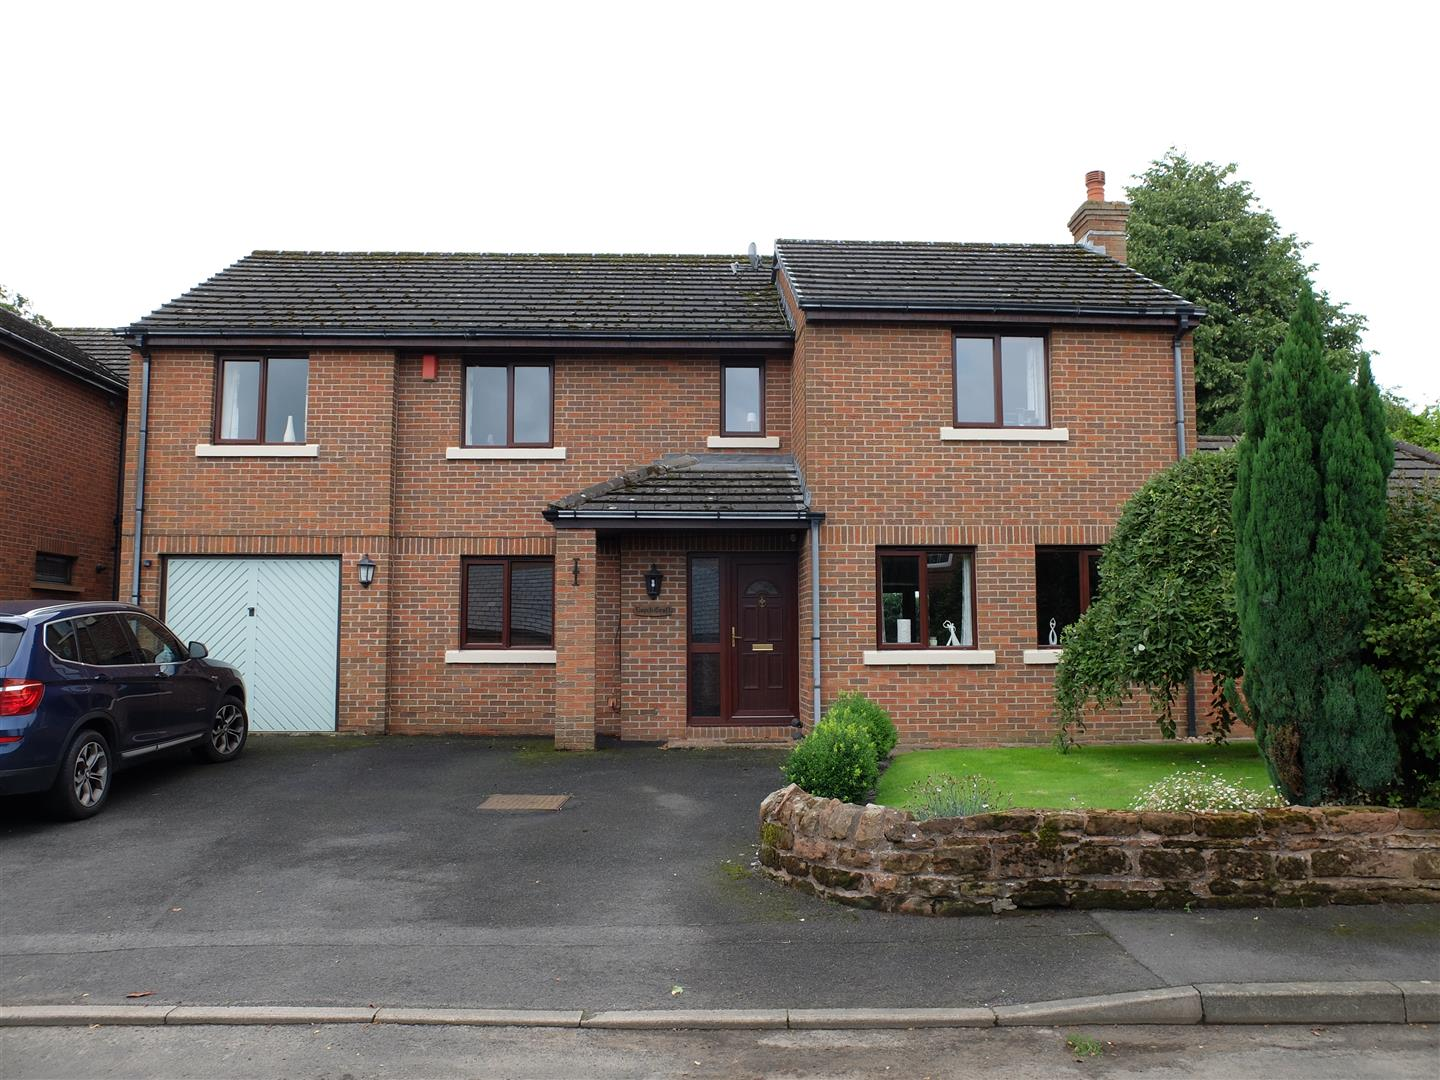 Beech Croft Ghyll Road Carlisle 4 Bedrooms House - Detached For Sale